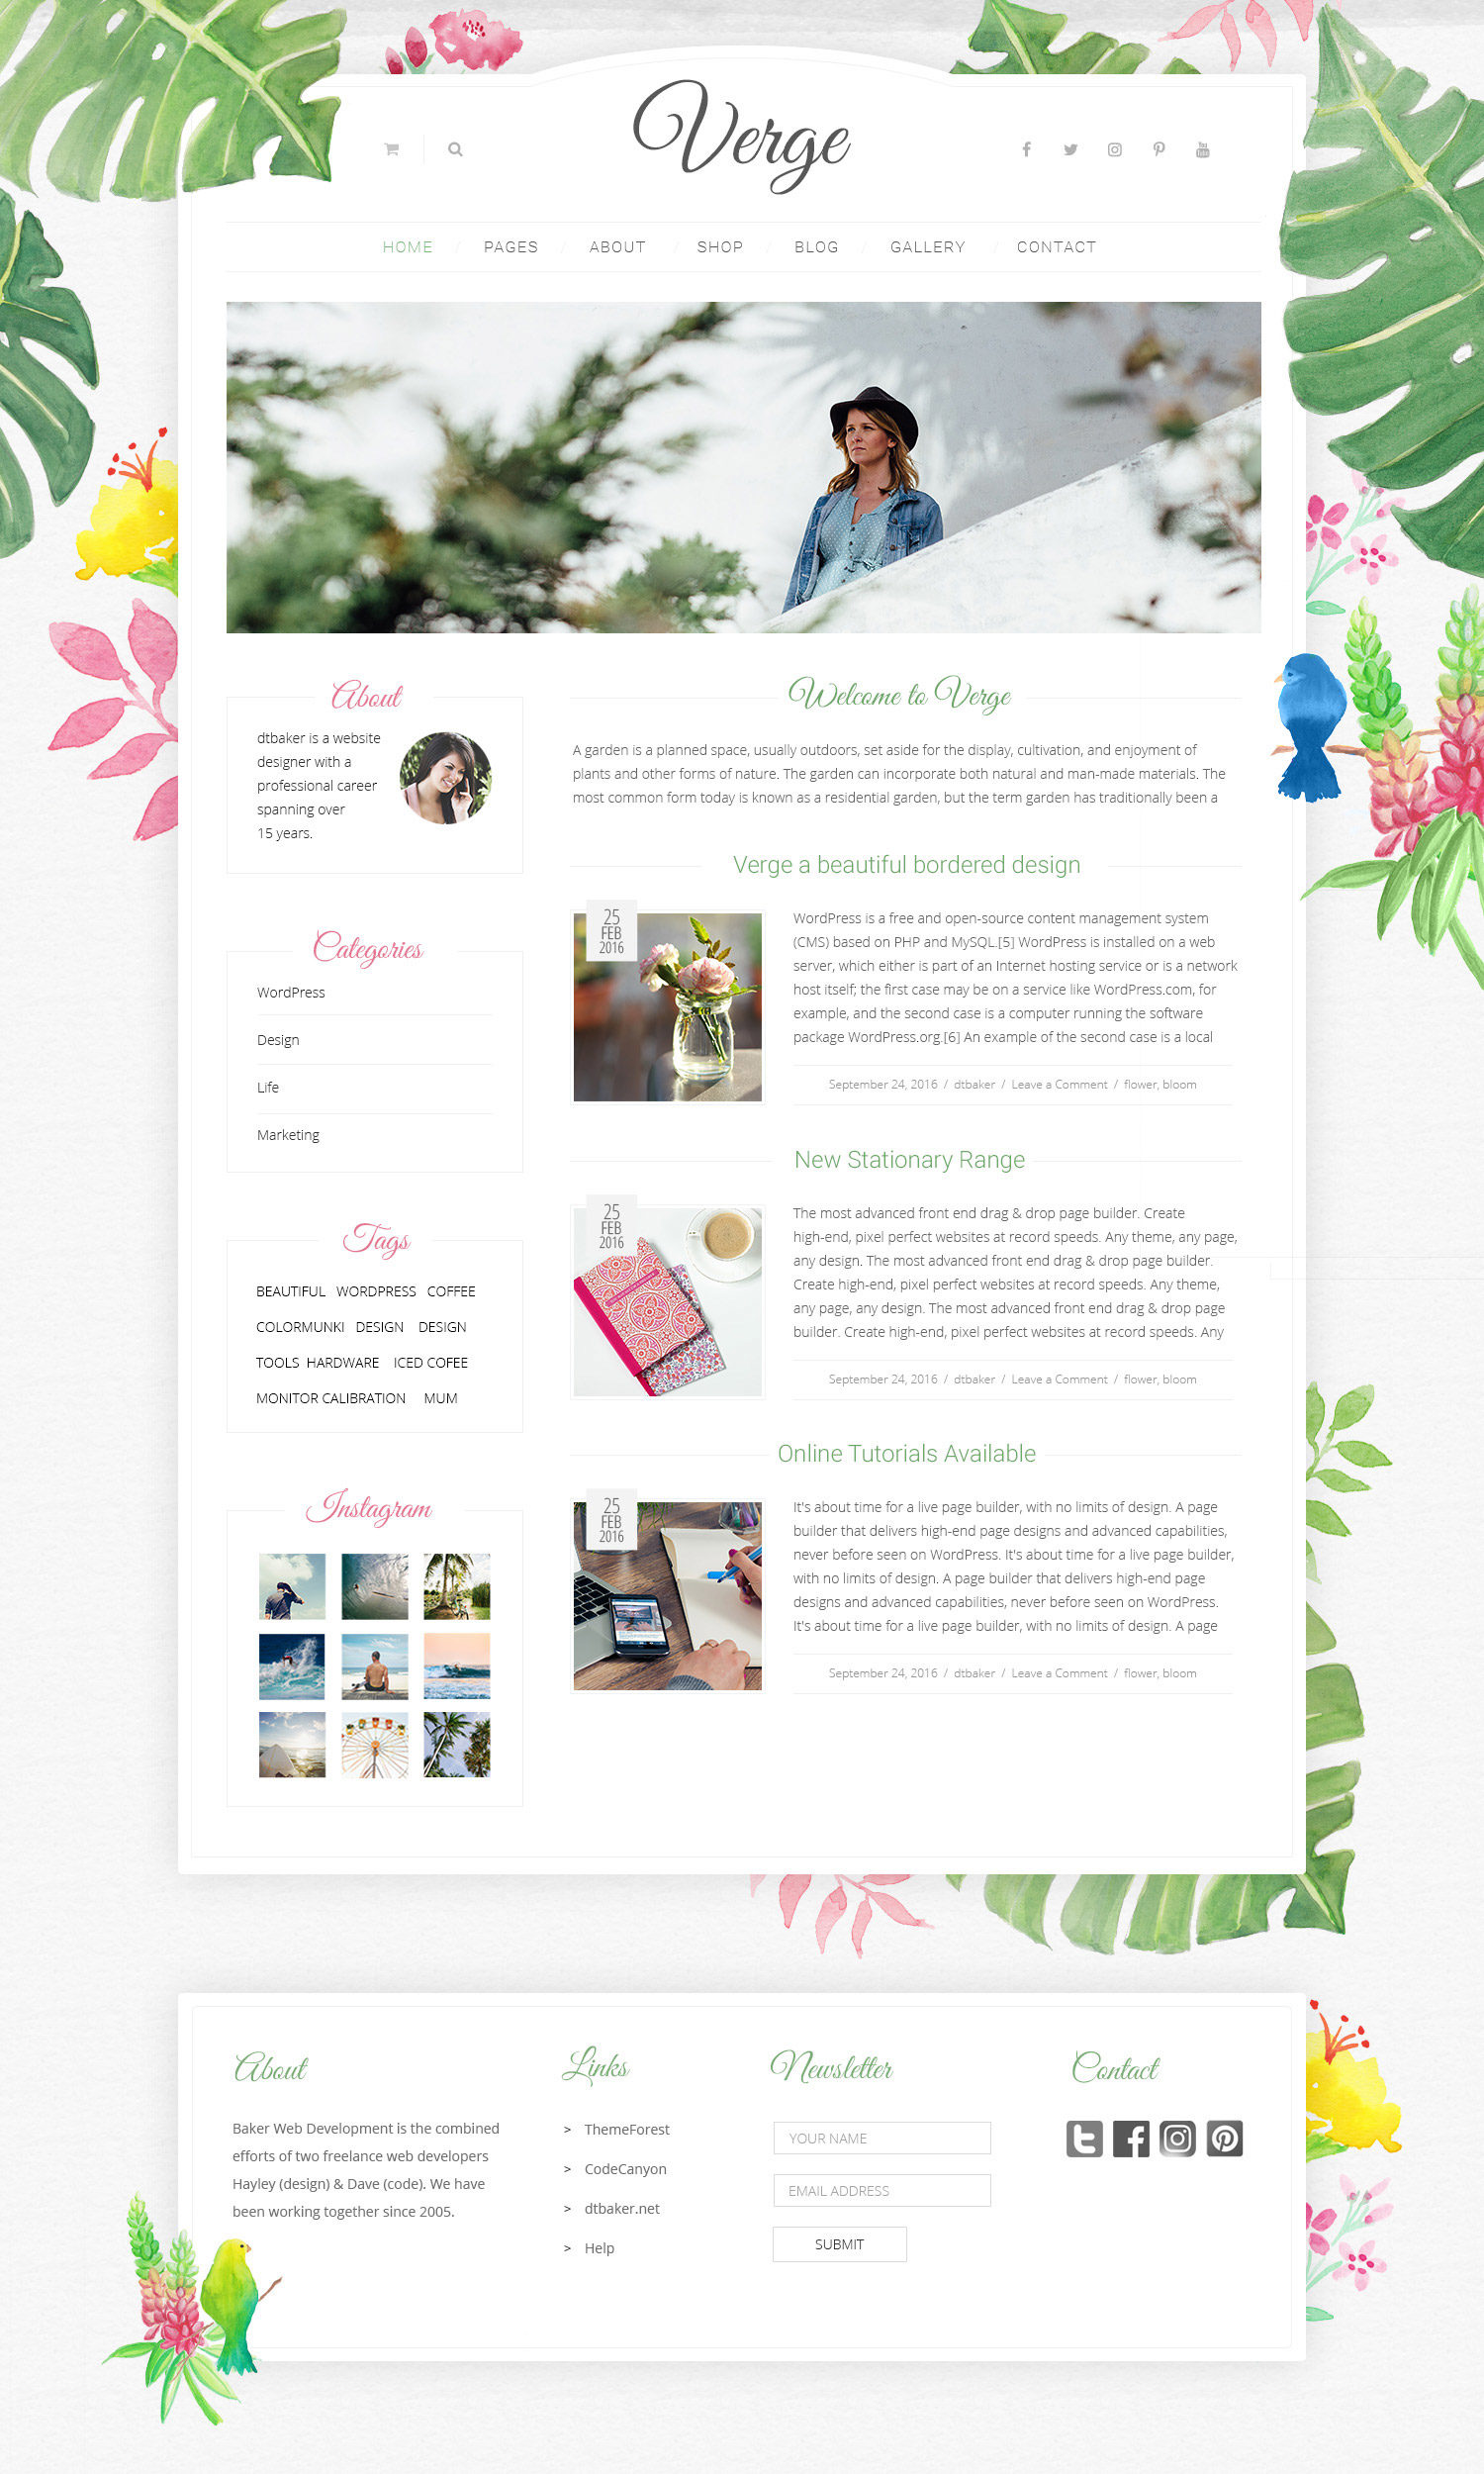 verge watercolour wordpress theme